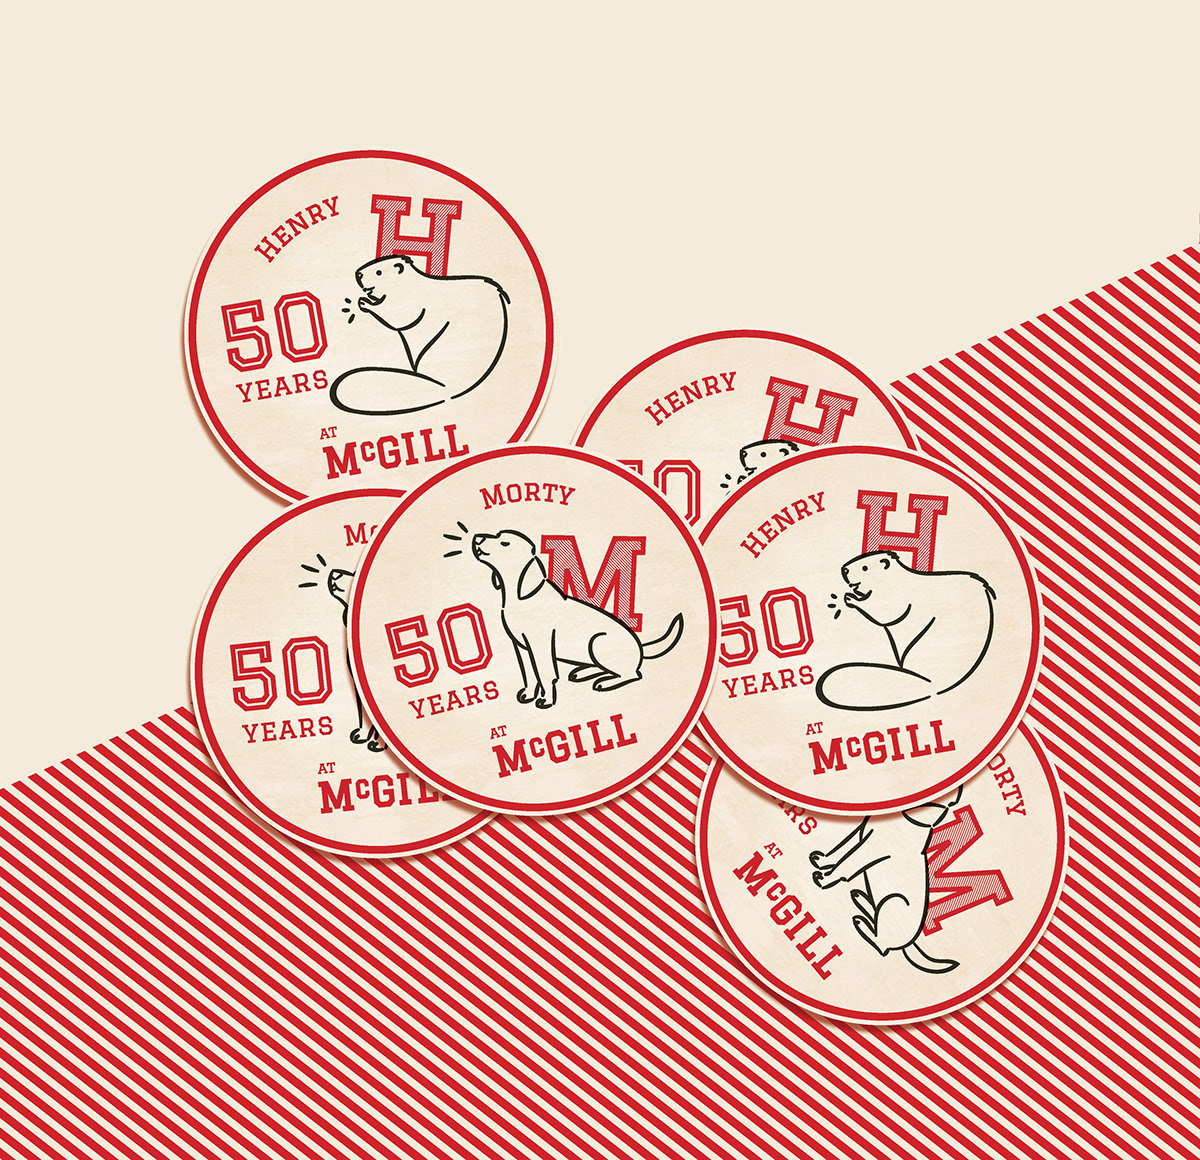 pennant banner stickers Coasters character illustration red White cream dog beaver